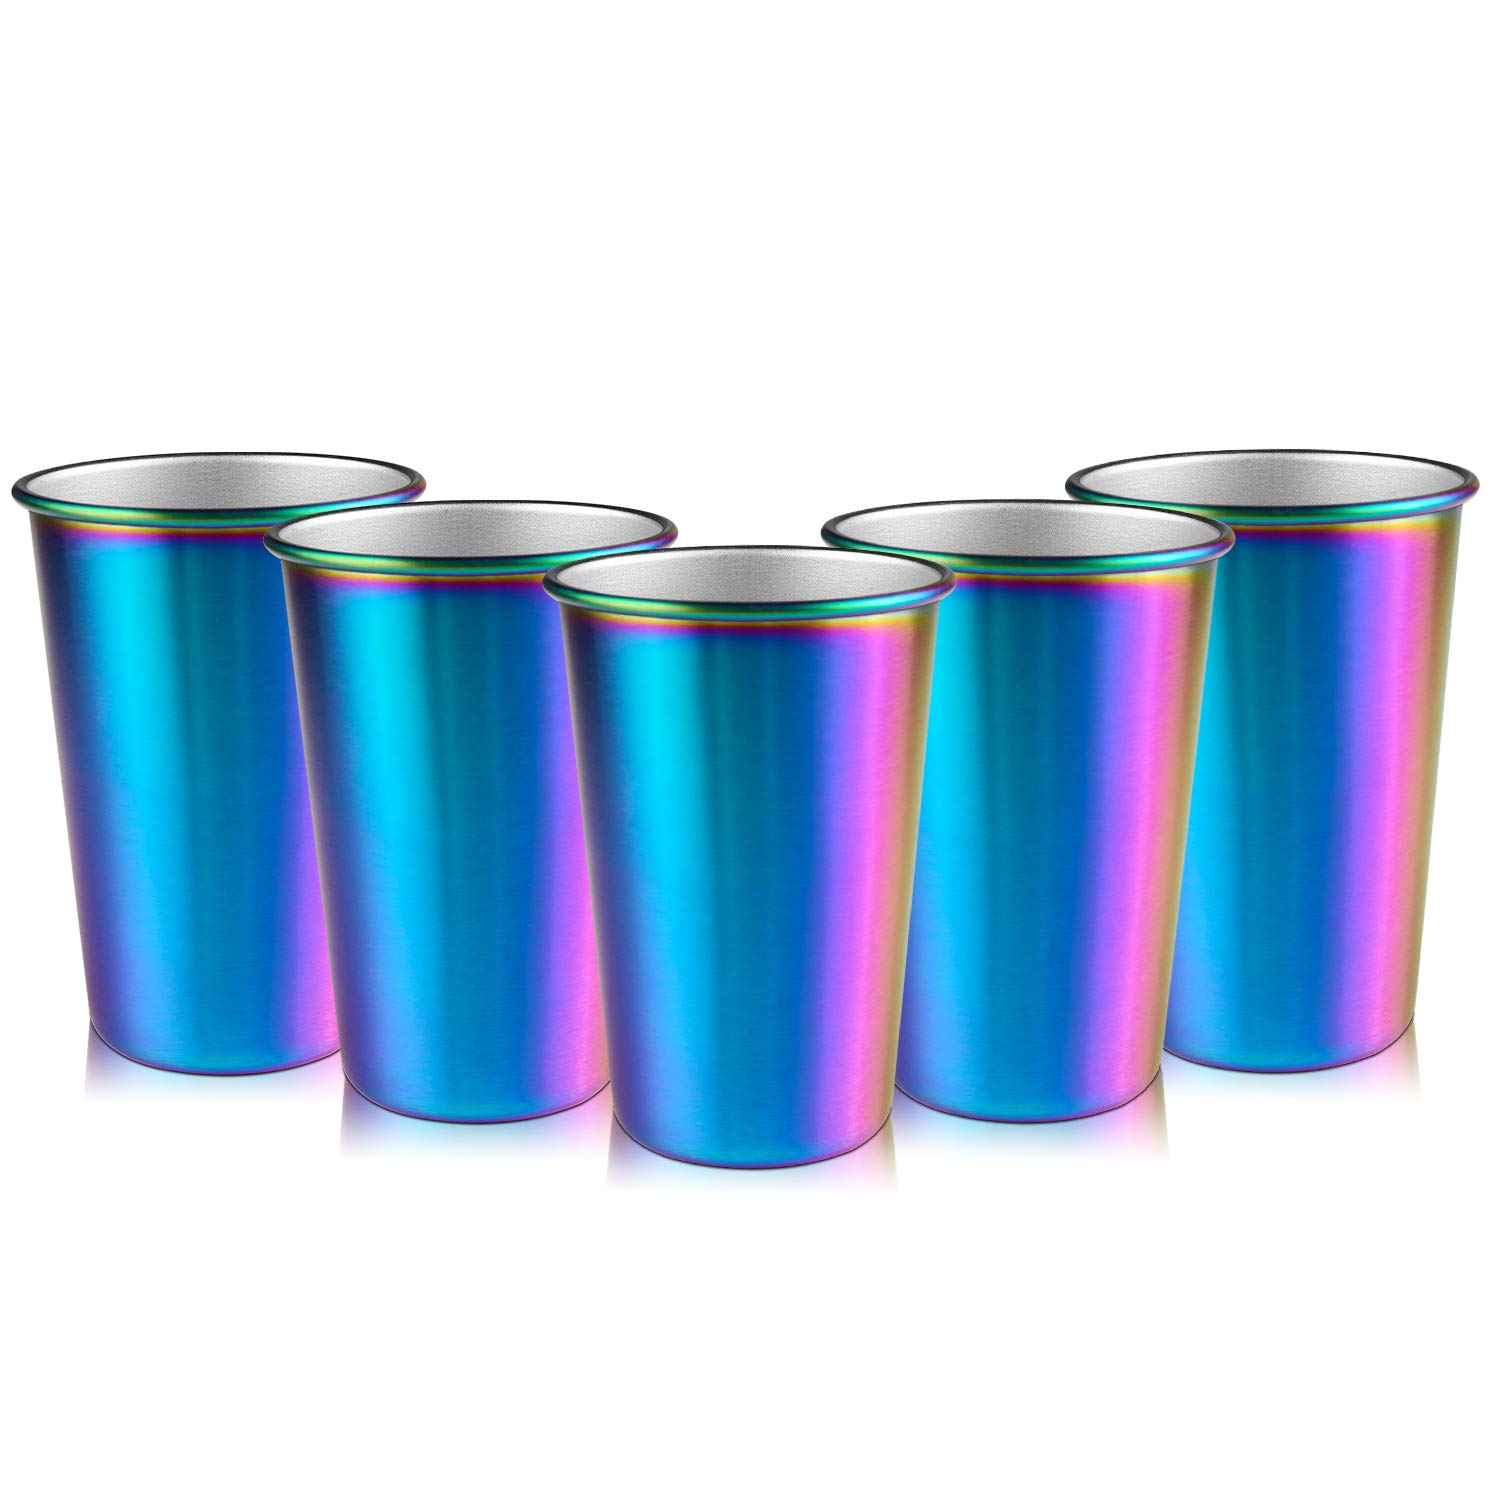 Rainbow Party Cups, Kereda Stainless Steel Cups 16oz 5-Pack Premium Drinking Glasses Unbreakable Colorful Tumblers BPA Free Eco Friendly by KEREDA (Image #1)